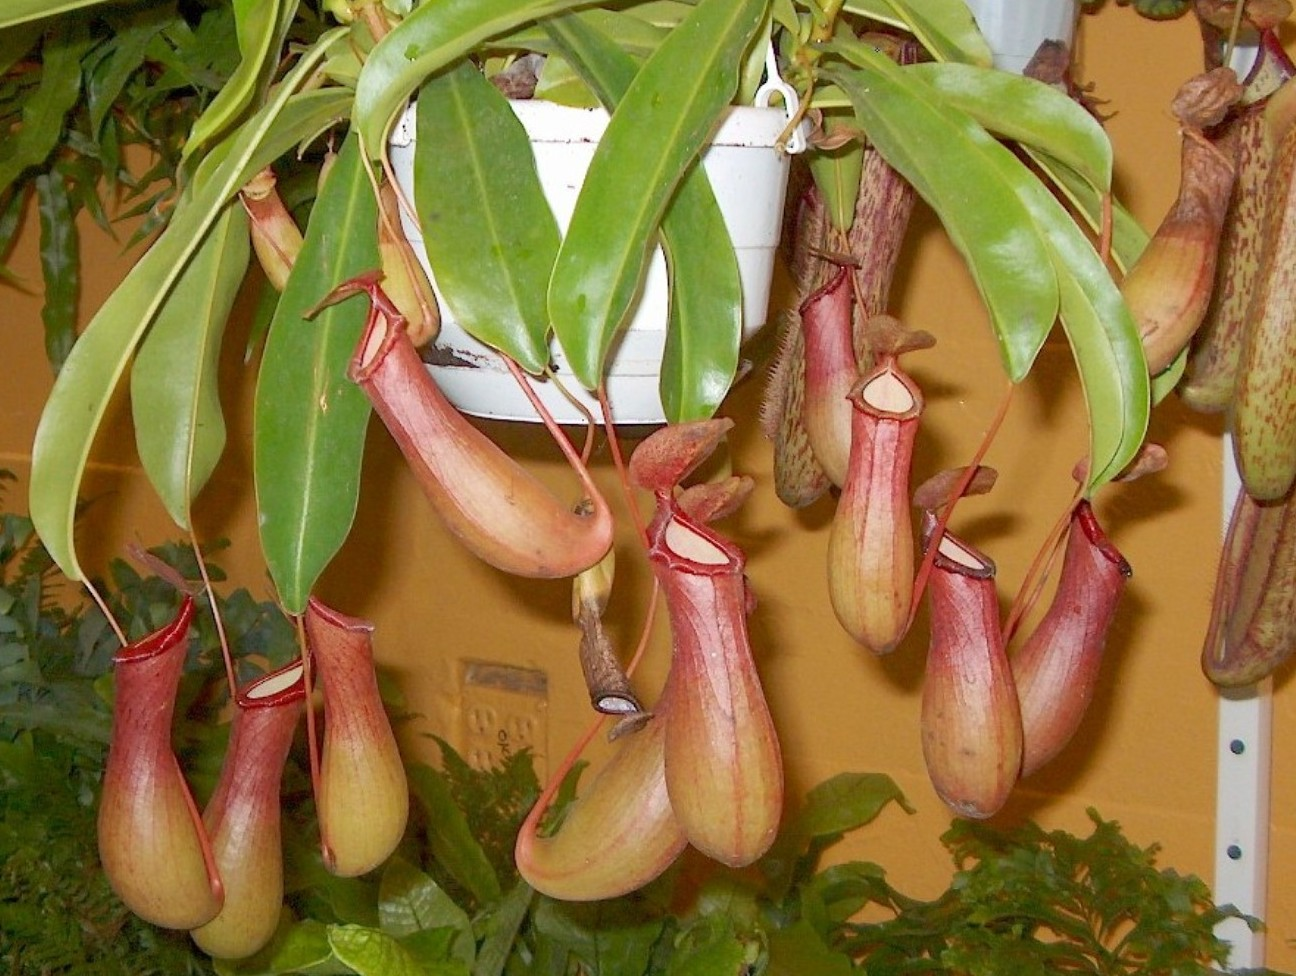 Nepenthes alata  / Nepenthes alata